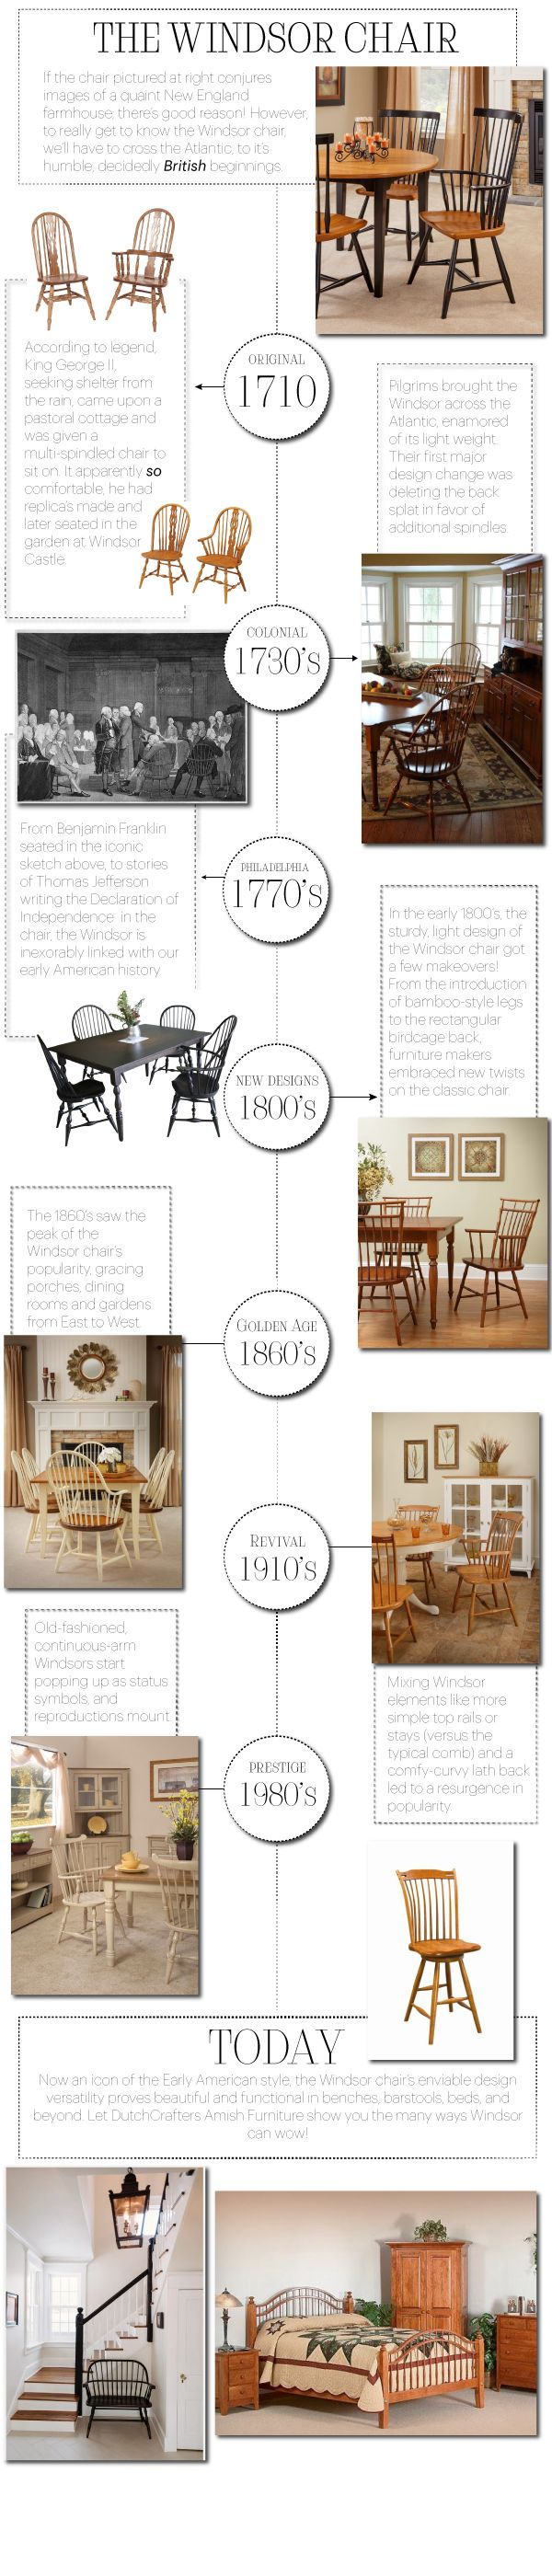 Amish furniture of bristol - A Brief History Of The Windsor Chair Infographic Windsor Chairsamish